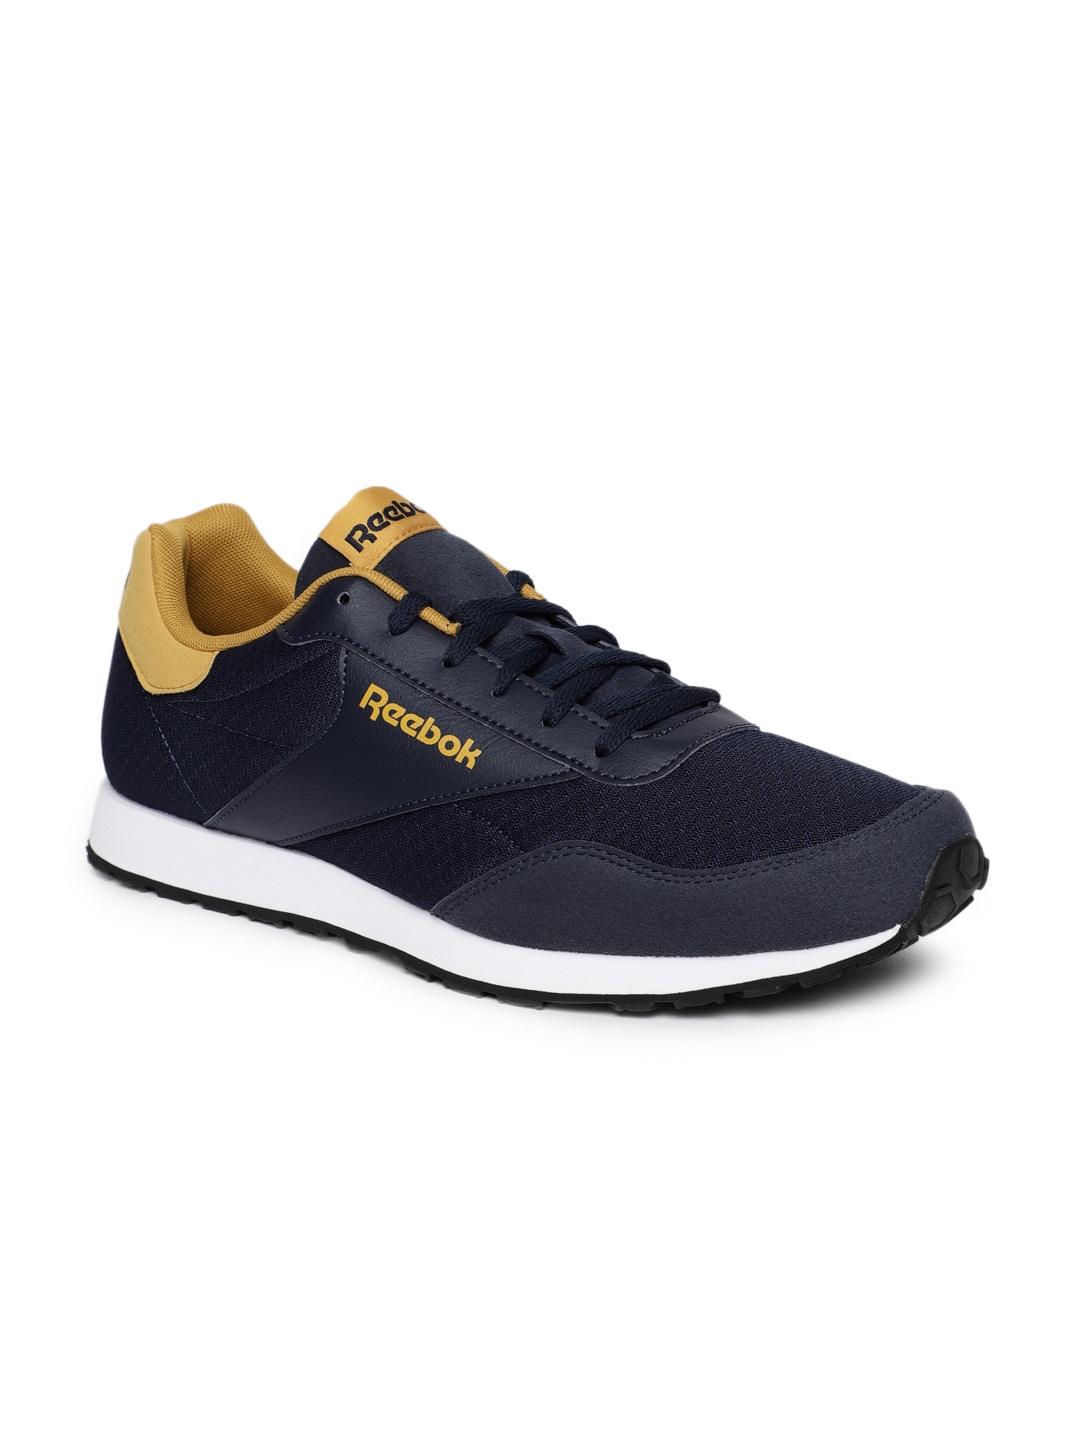 13a501af44b Puma Reebok Lee Wrangler Rockport Casual Shoes Sports - Buy Puma Reebok Lee  Wrangler Rockport Casual Shoes Sports online in India